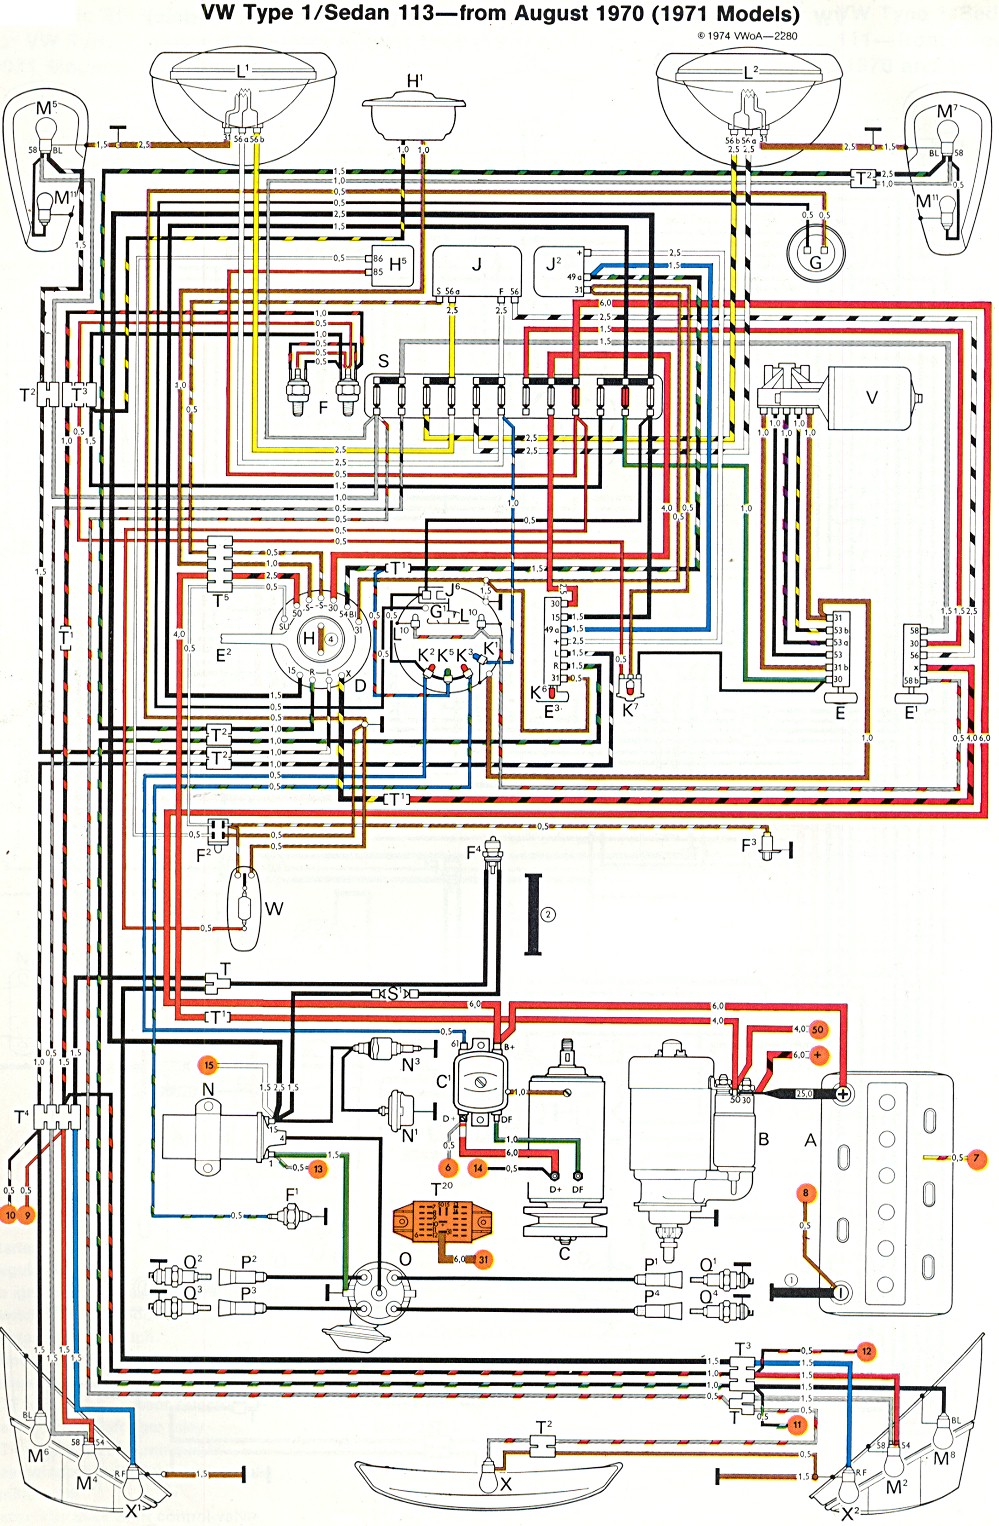 medium resolution of wiring diagram for 2002 volkswagen beetle wiring diagram row model volkswagen beetle fuse diagram 02